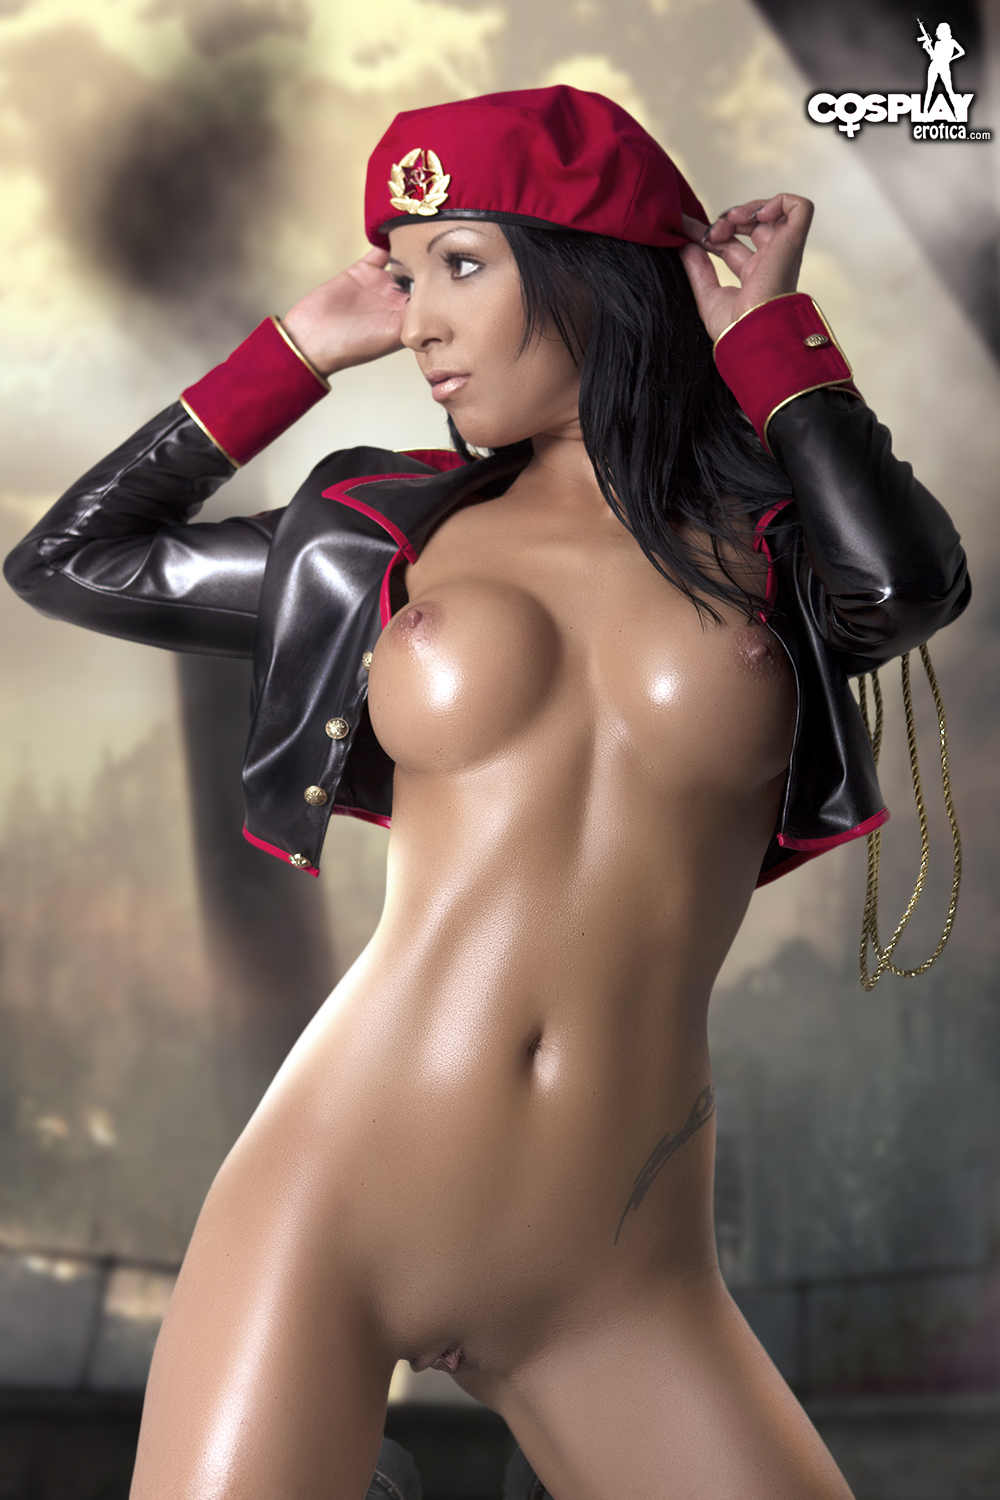 cosplay sex   bokep indonesia